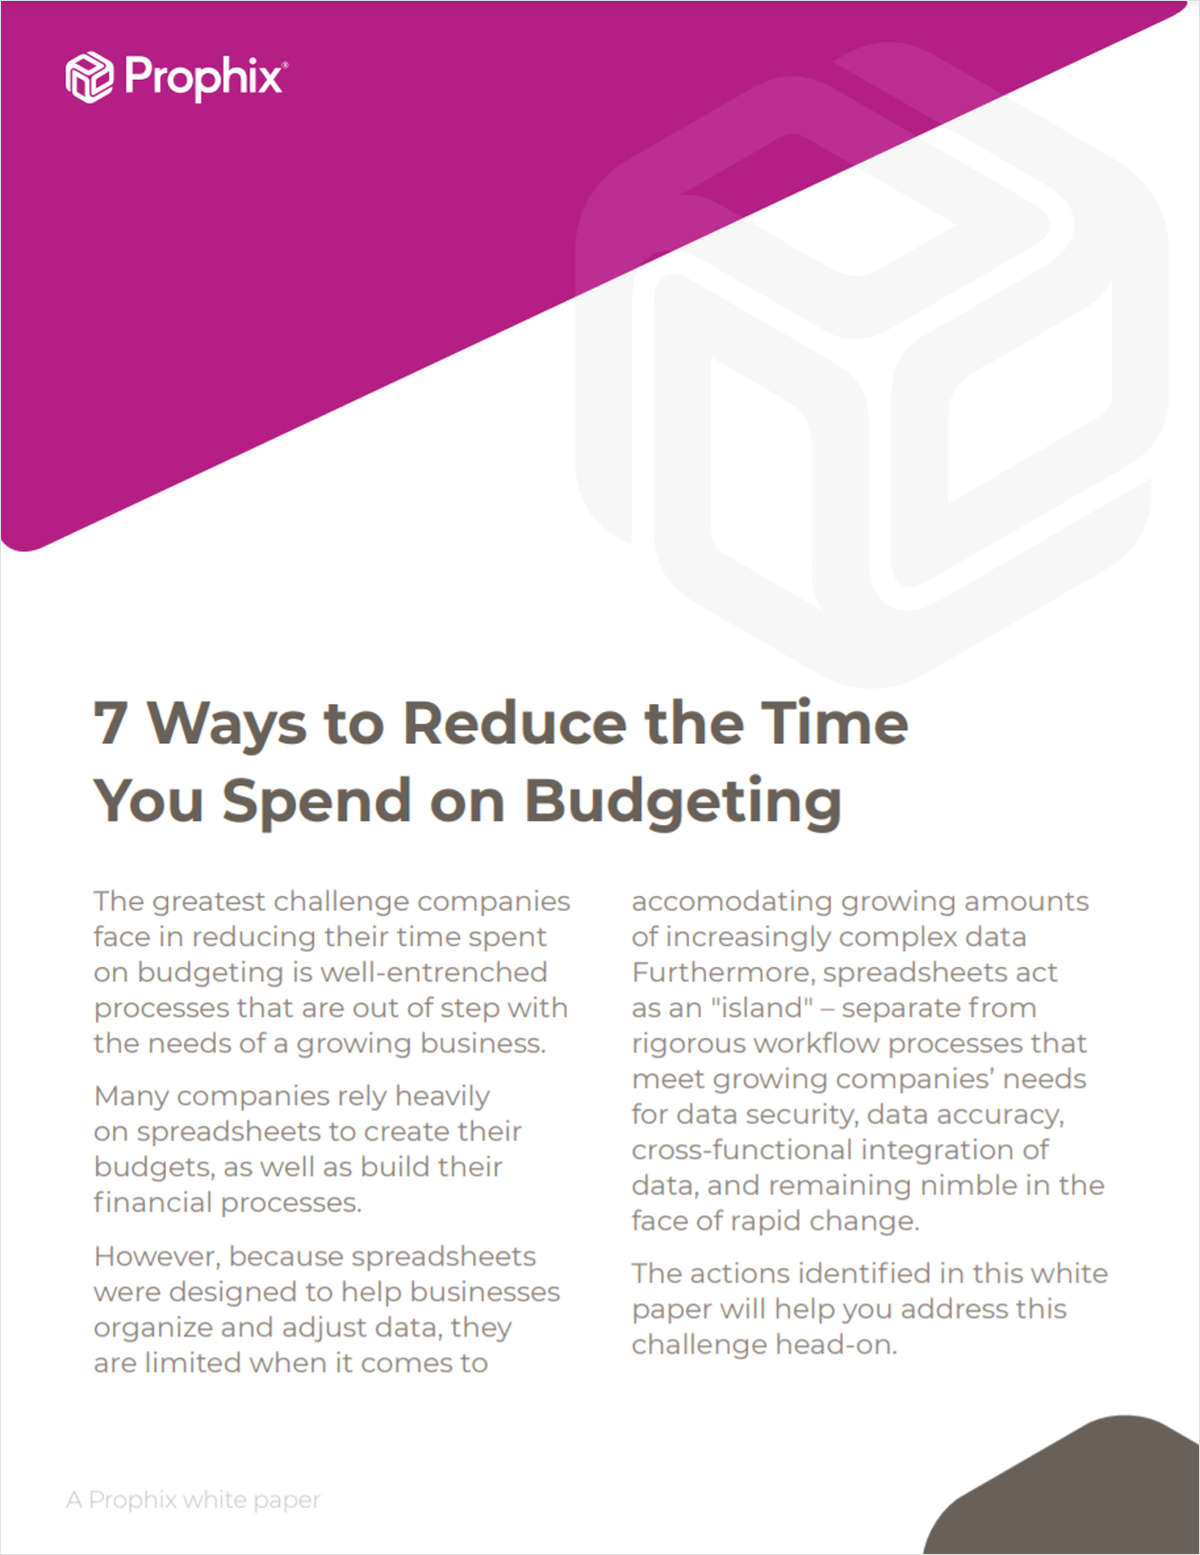 7 Tips to Save Time and Resources on Your Budgeting Process